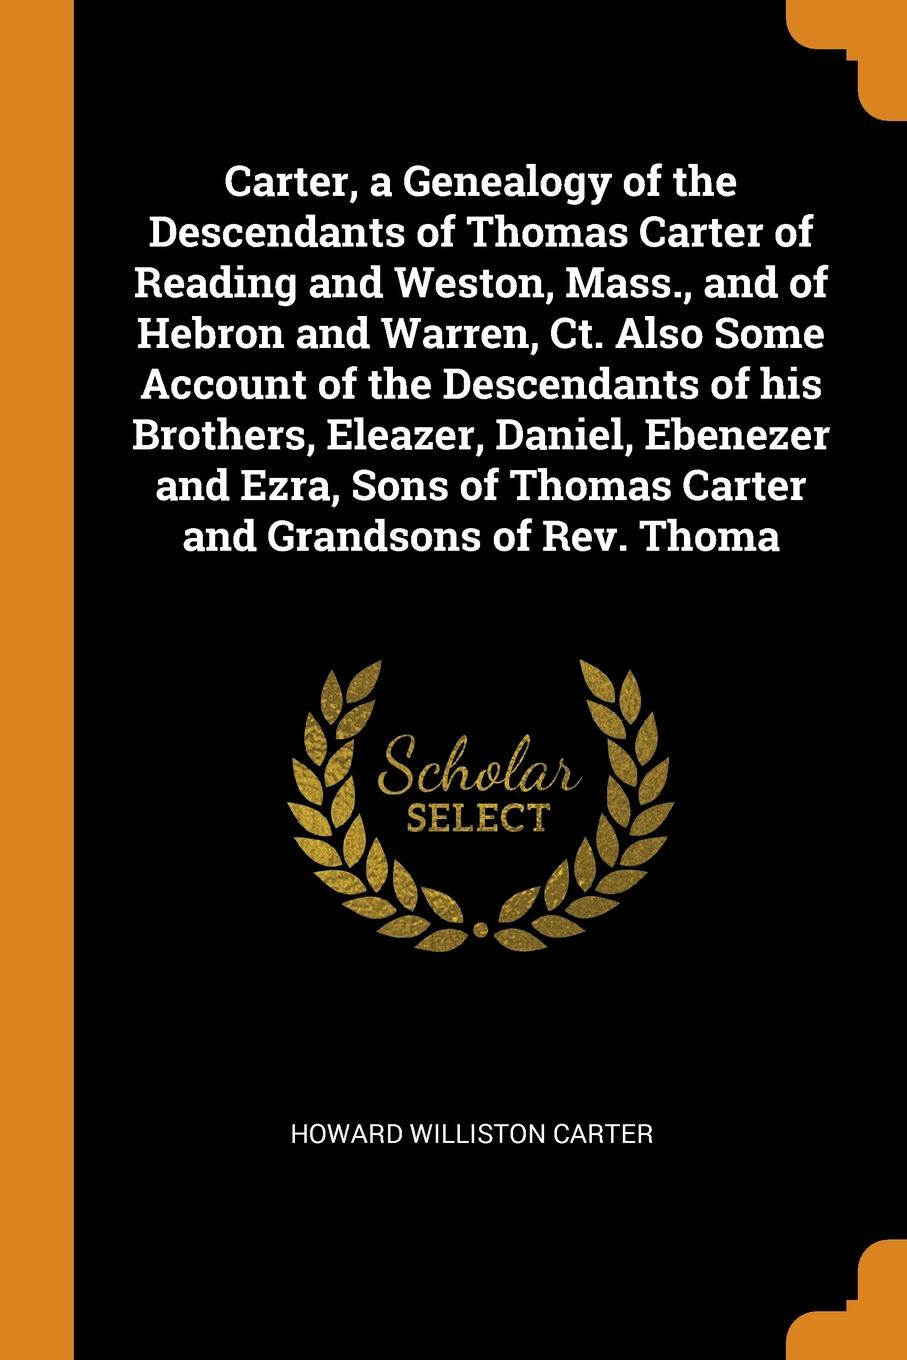 Howard Williston Carter Carter, a Genealogy of the Descendants of Thomas Carter of Reading and Weston, Mass., and of Hebron and Warren, Ct. Also Some Account of the Descendants of his Brothers, Eleazer, Daniel, Ebenezer and Ezra, Sons of Thomas Carter and Grandsons of Re... redington carter john redington of topsfield massachusetts and some of his descendants with notes on the wales family